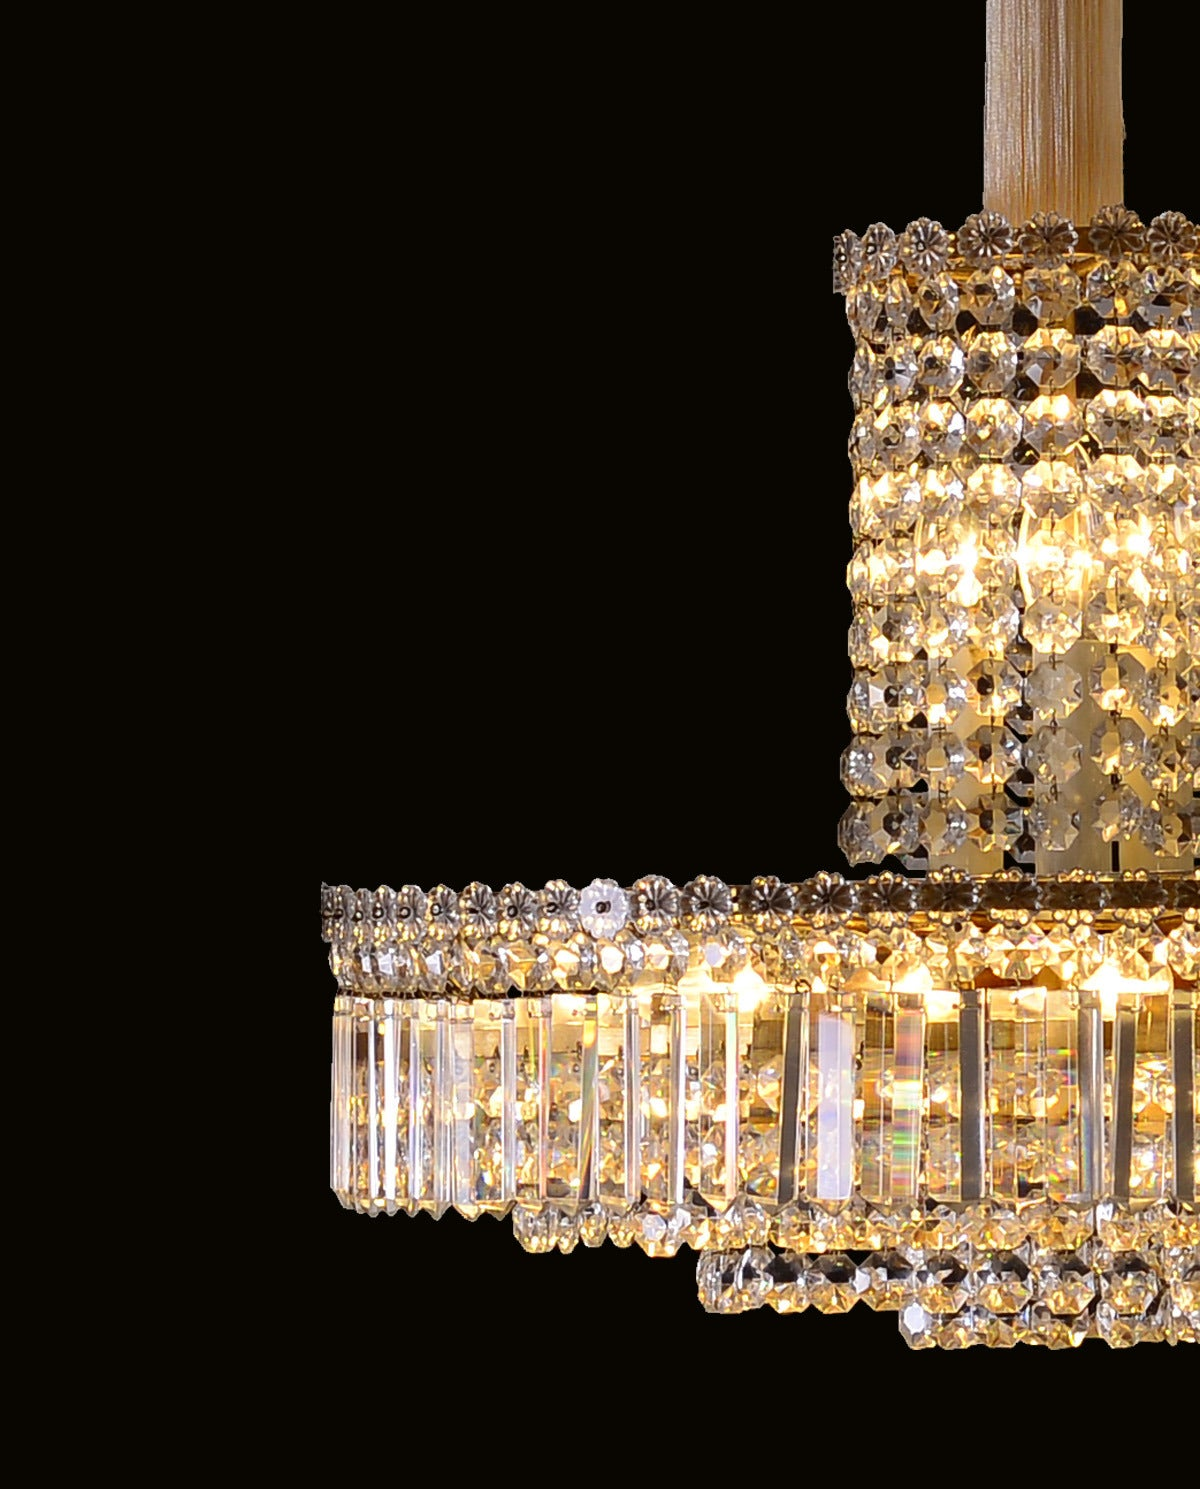 An unusual ten flames parlor chandelier with excellent glass-hangings. The indicated height is just the chandelier itself.